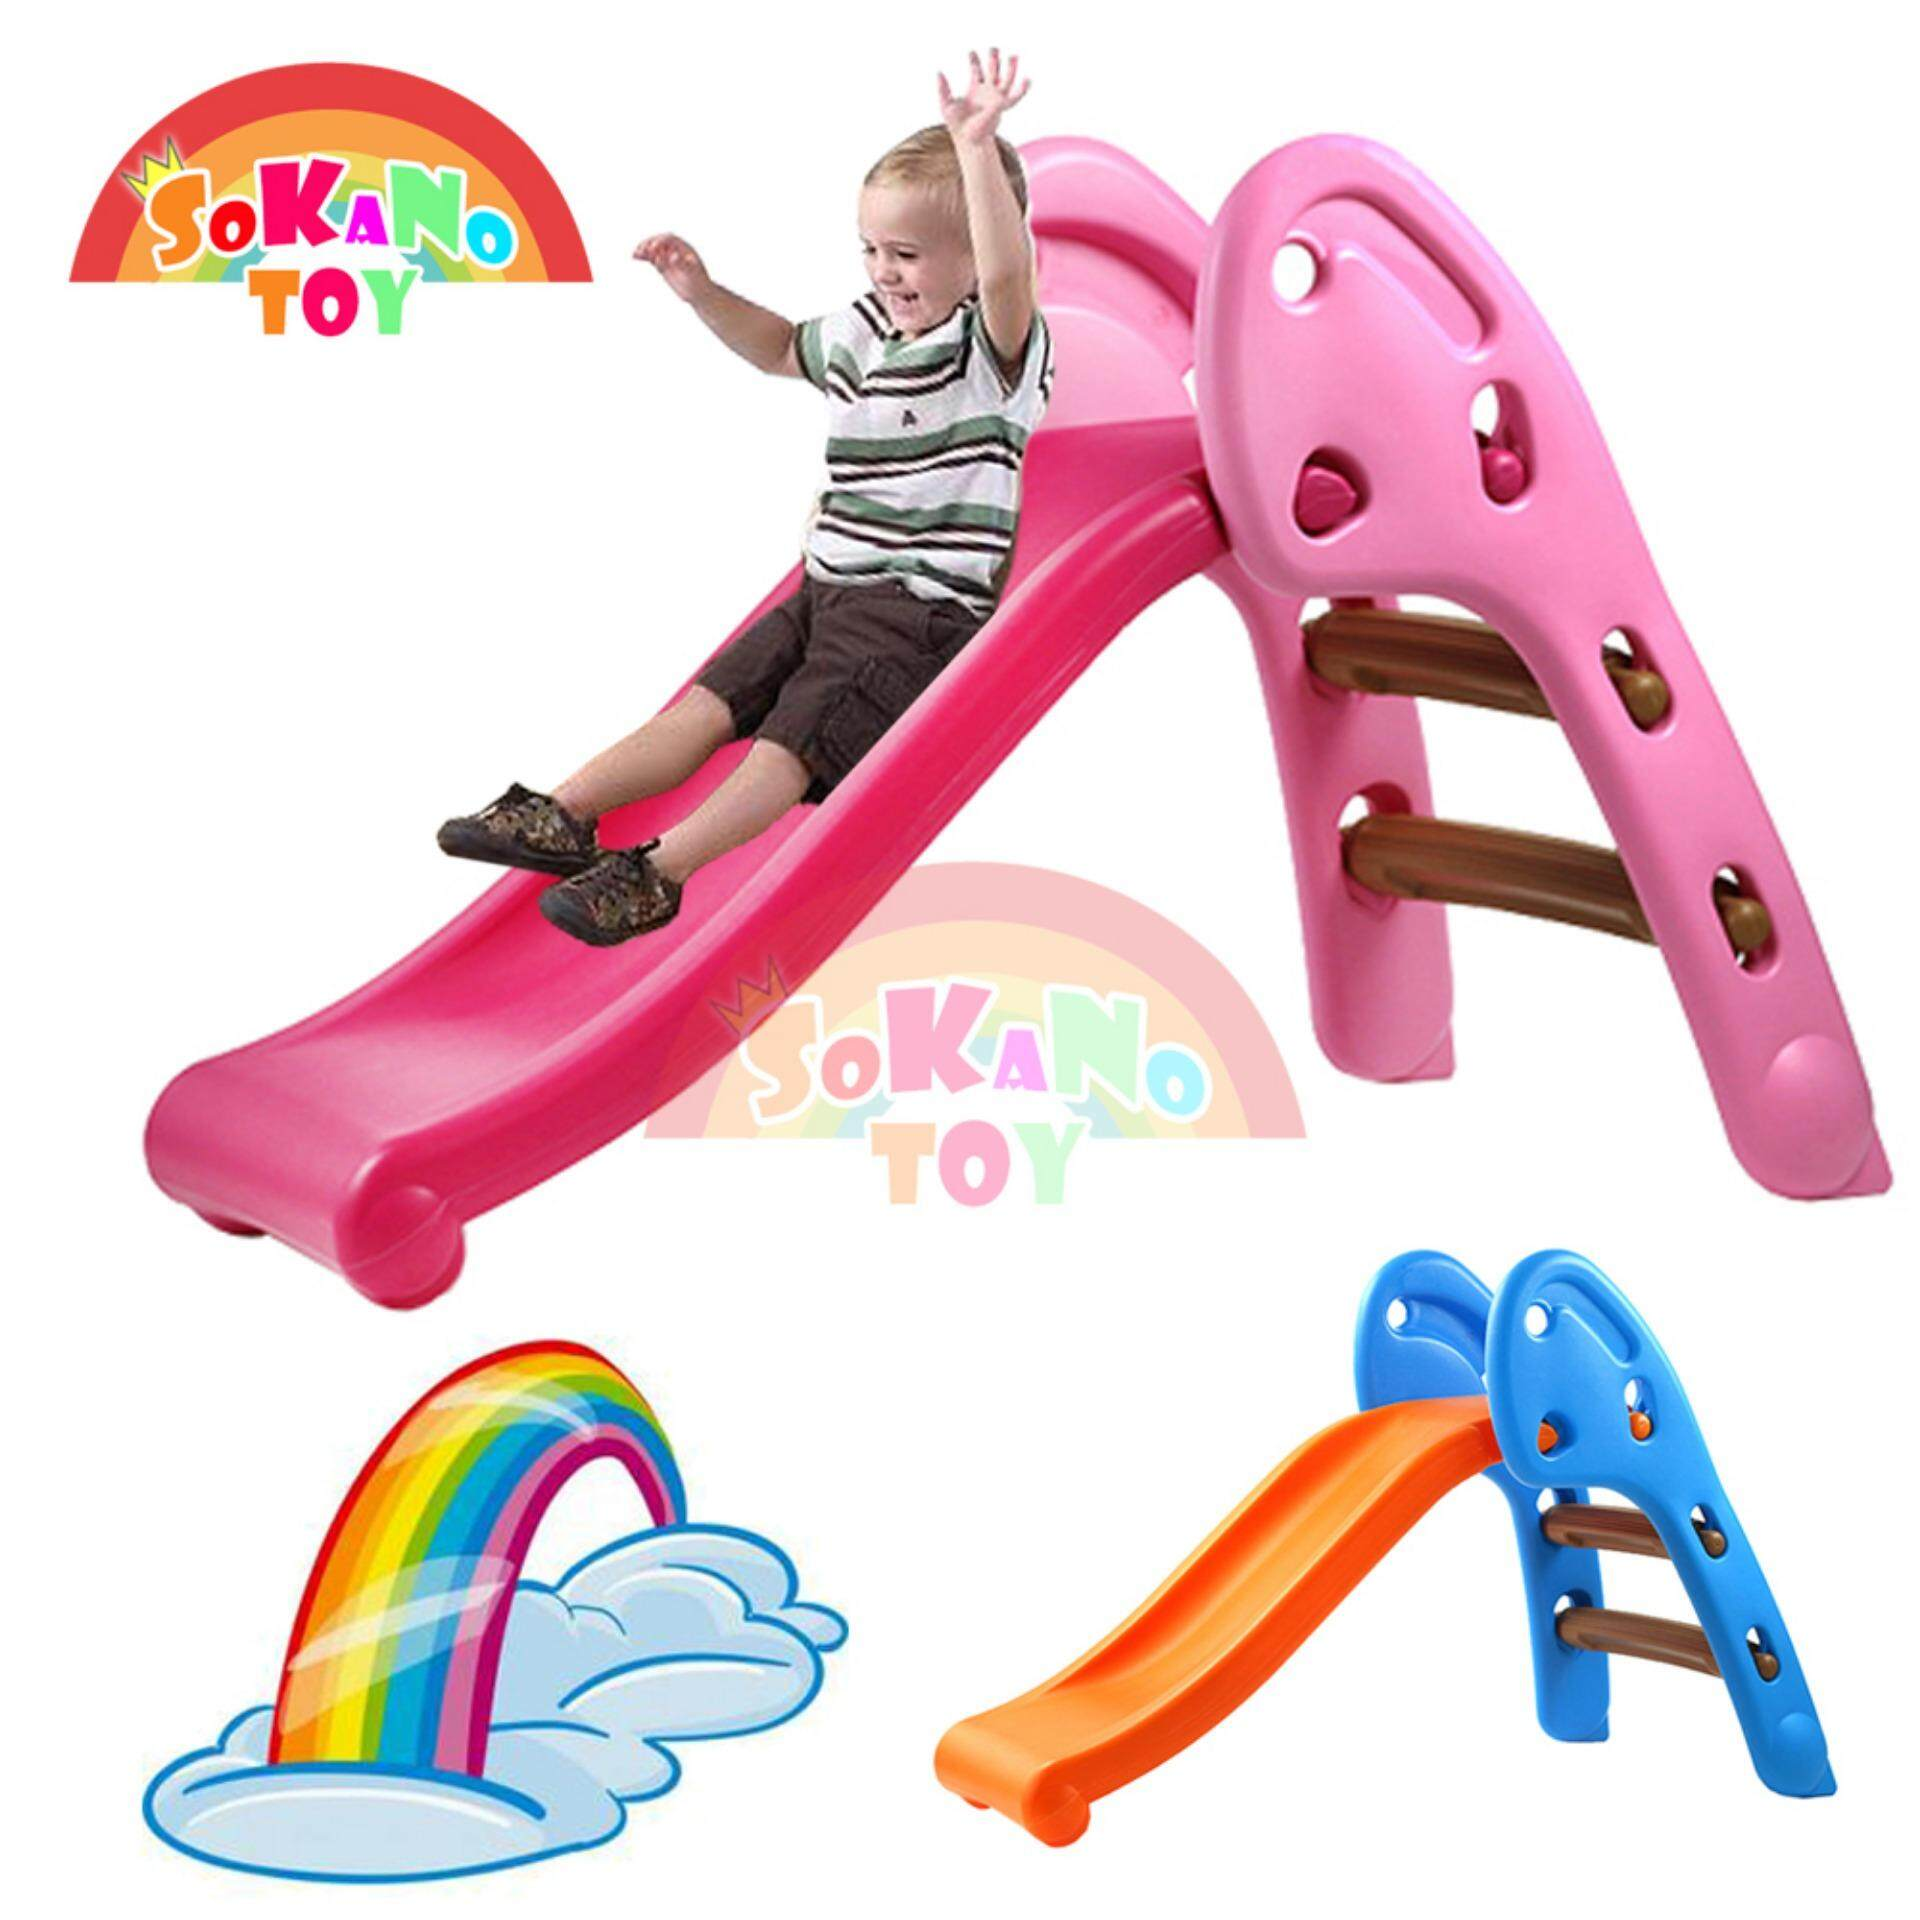 SOKANO TOY Mini Foldable Children Slide for Indoor and Outdoor - Pink